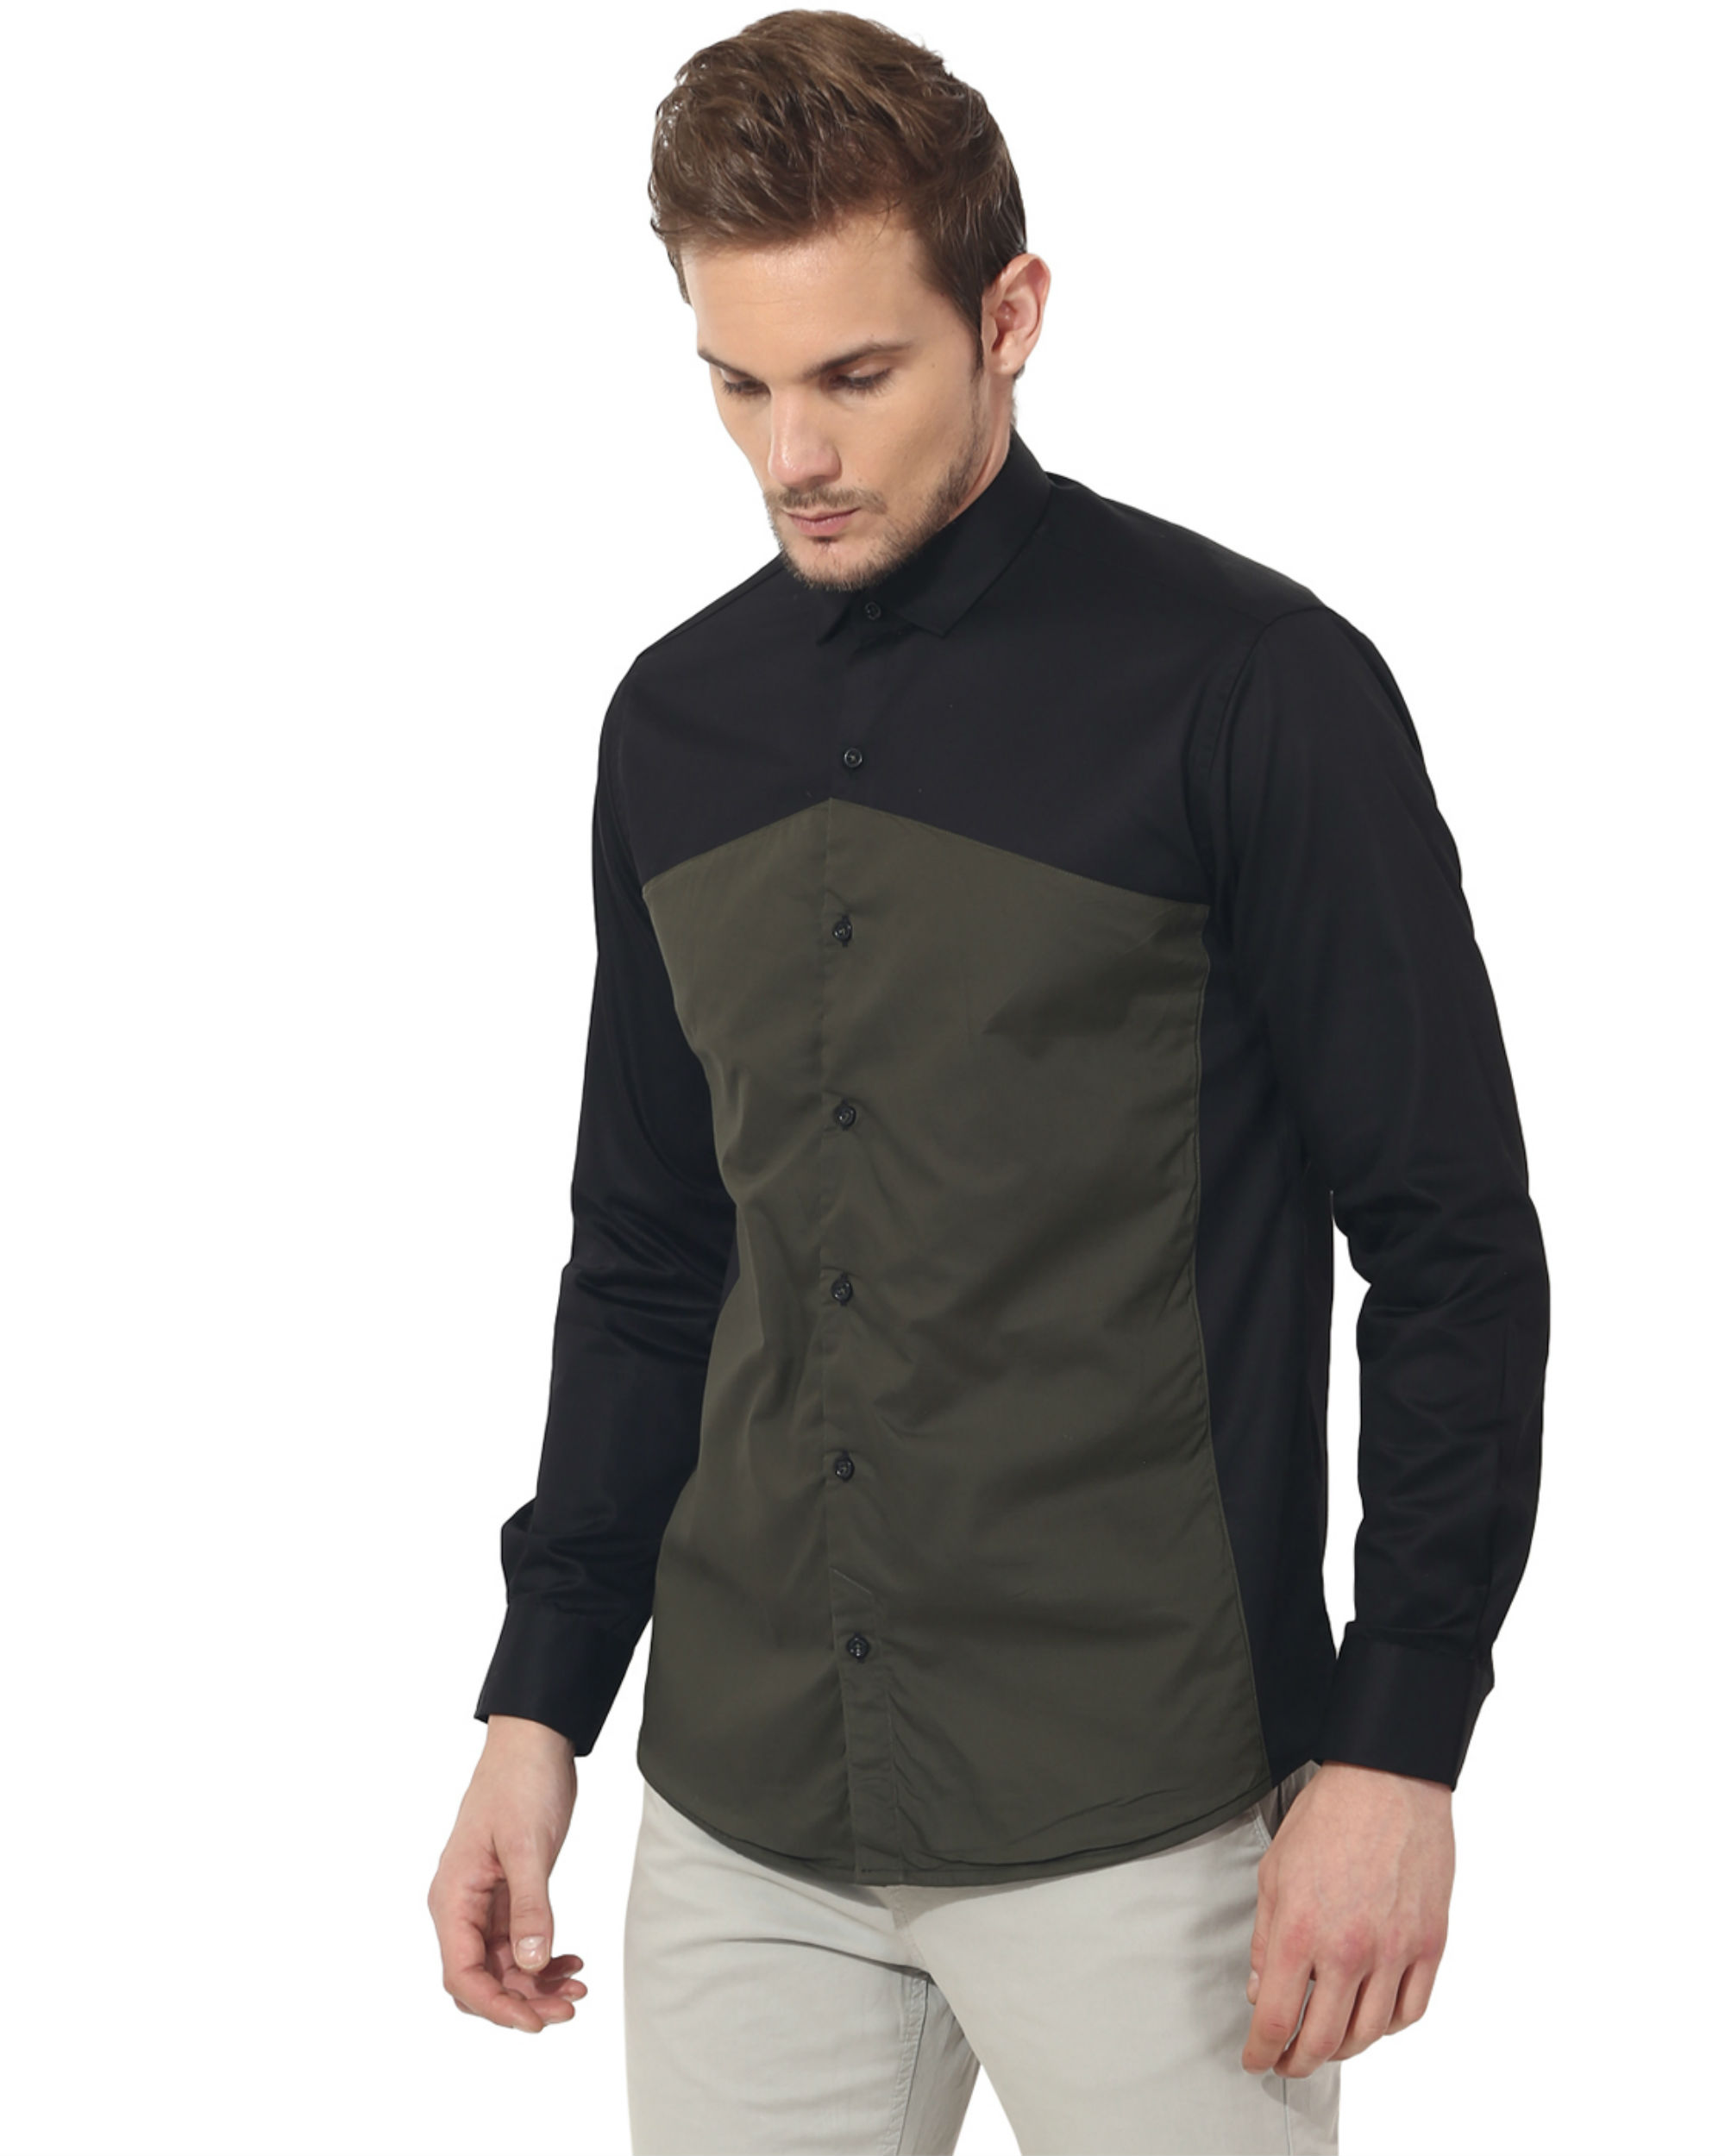 Olive triangle panel club wear shirt